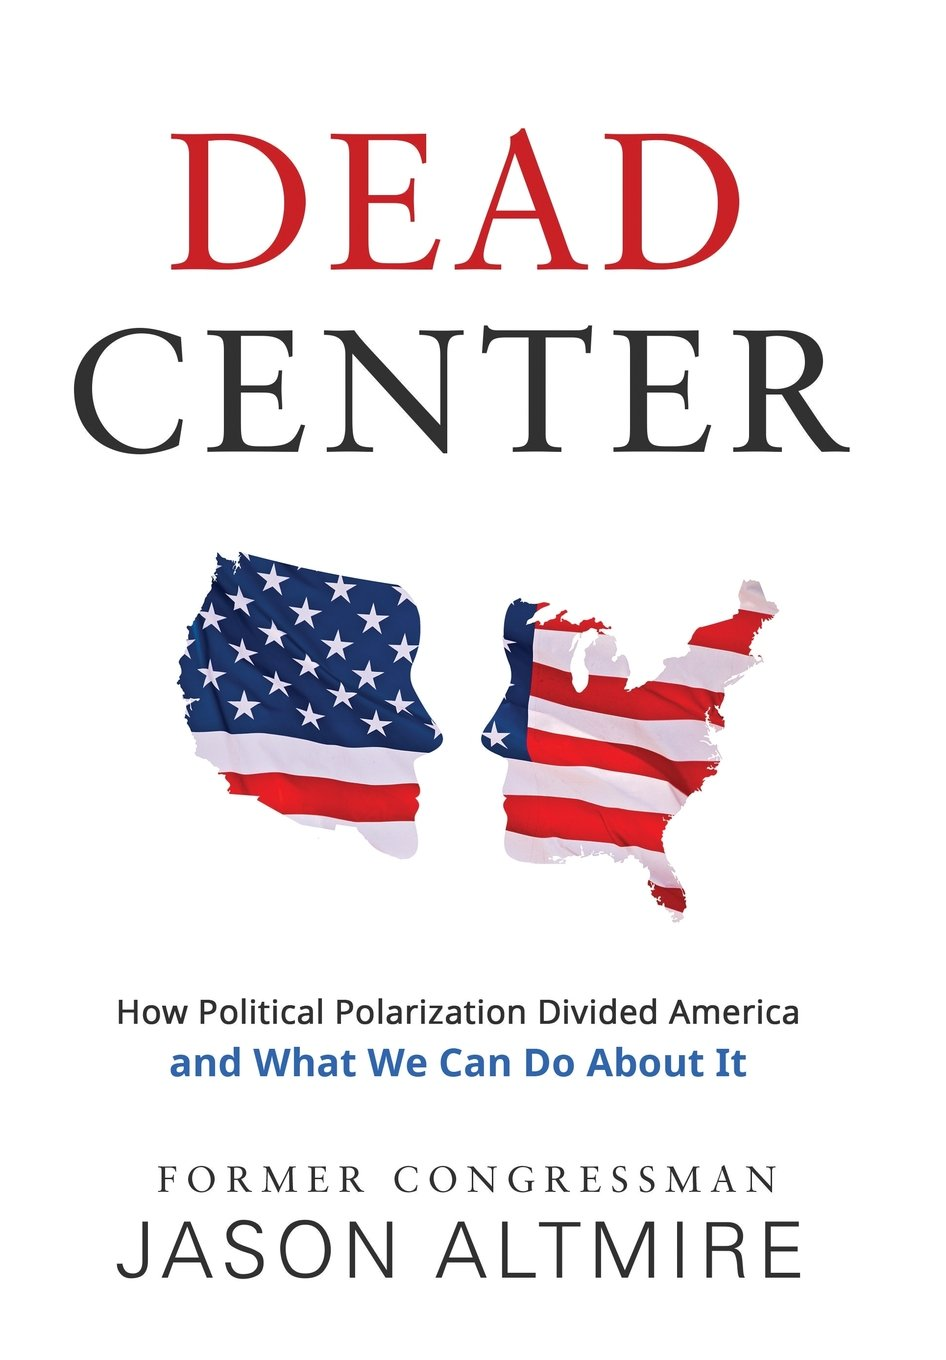 Dead Center: How Political Polarization Divided America and What We Can Do  About It: Jason Altmire: 9781620067543: Amazon.com: Books